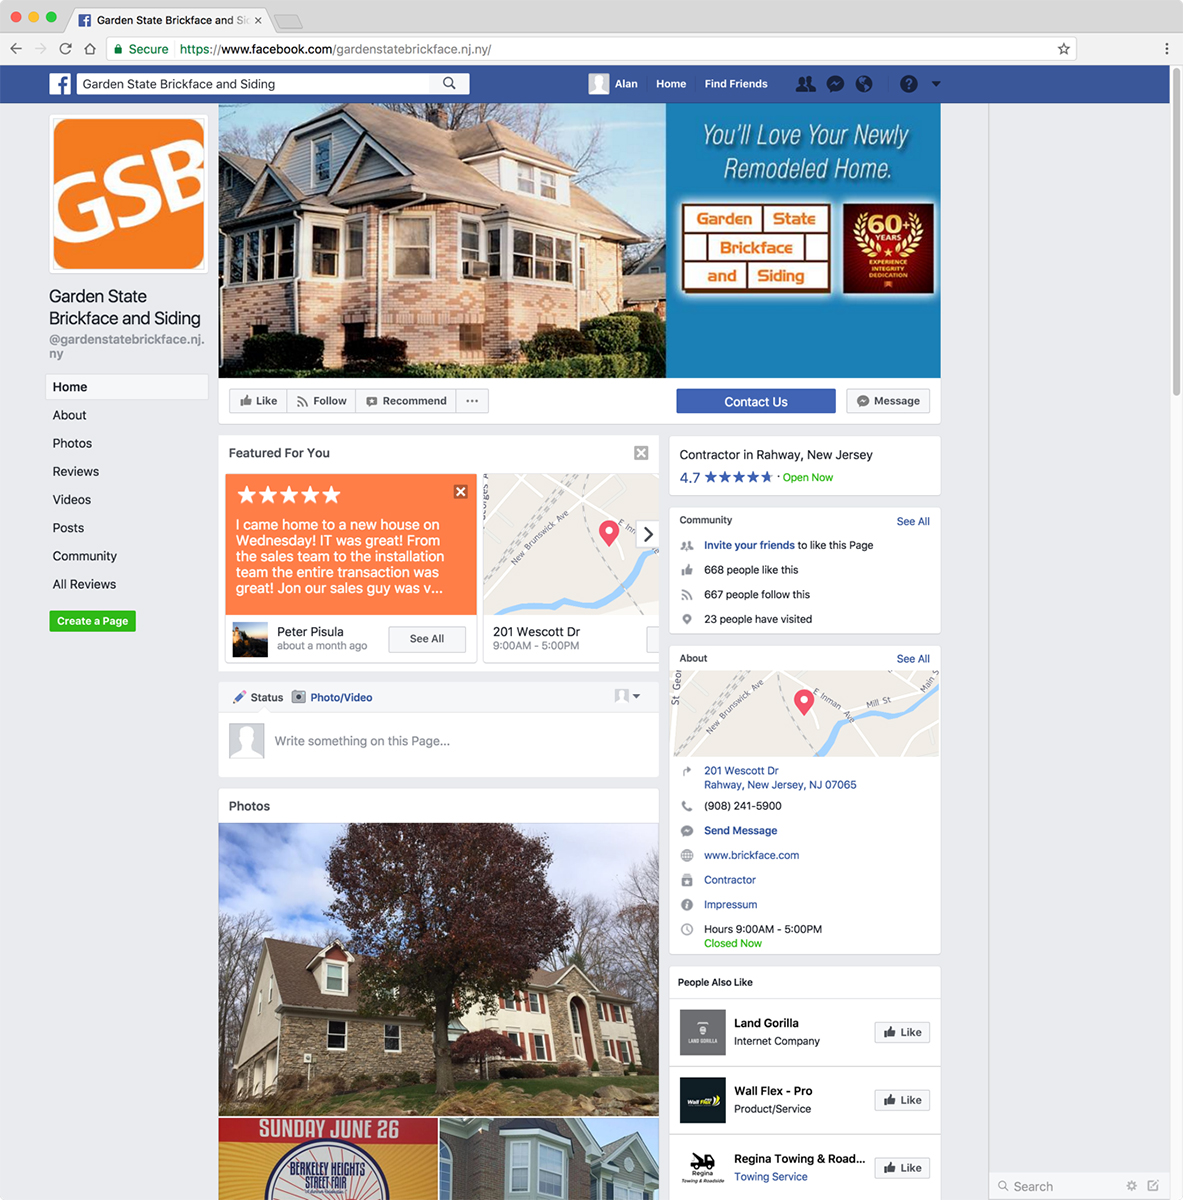 Garden State Brickface And Siding Facebook Page